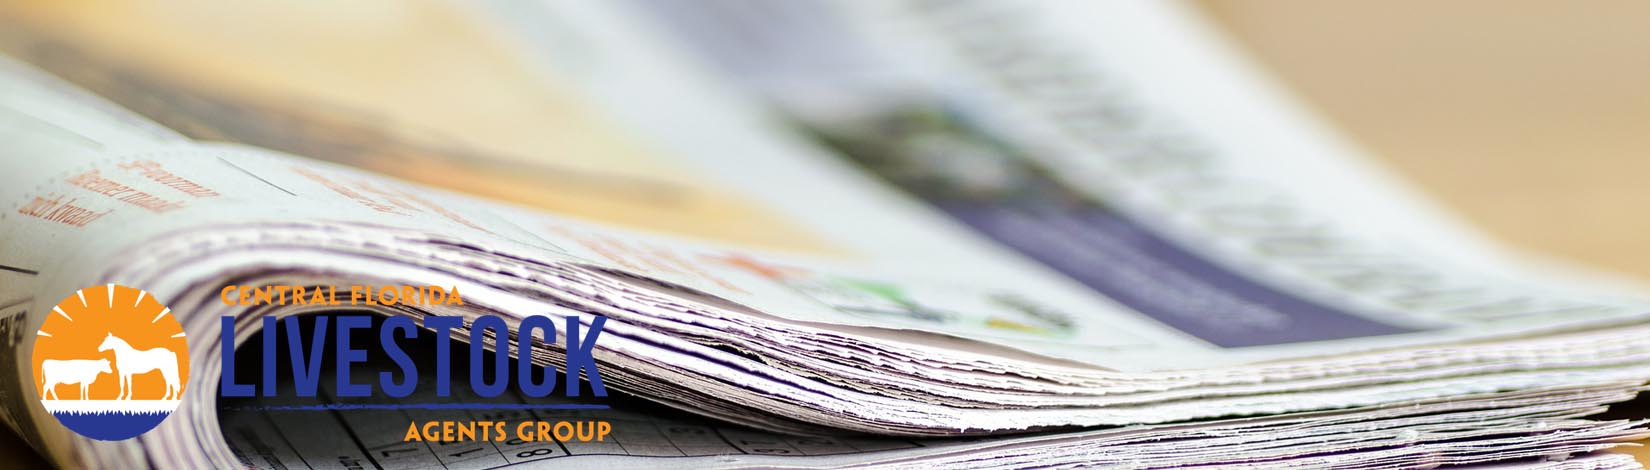 Newspaper Header 32